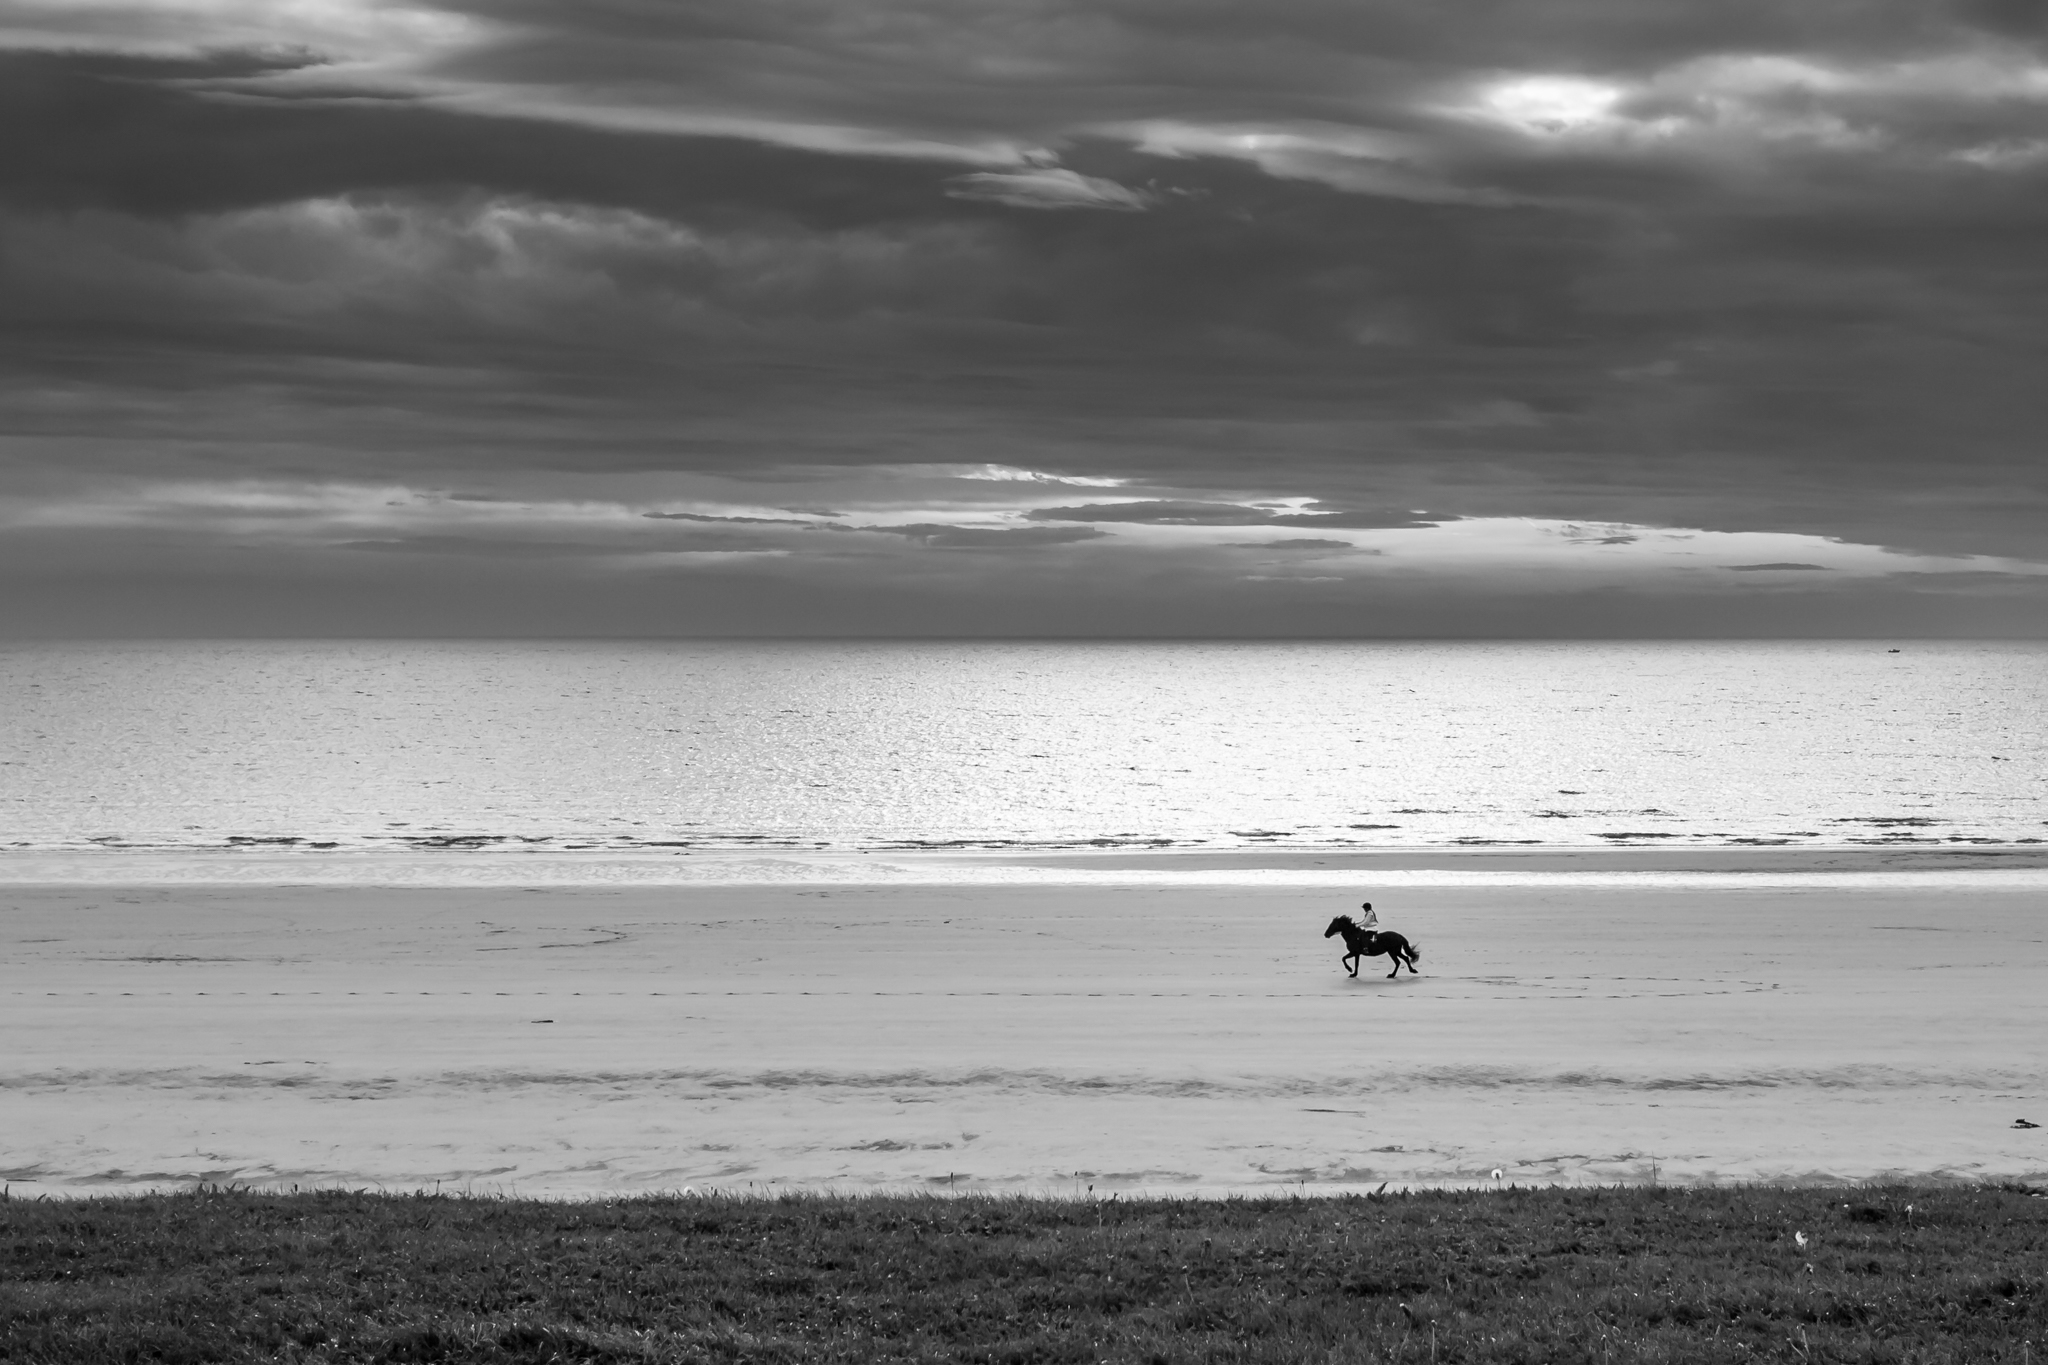 A woman takes her horse for an early morning ride along the Seaburn beach at Sunderland, as the rising sun lights the North sea.